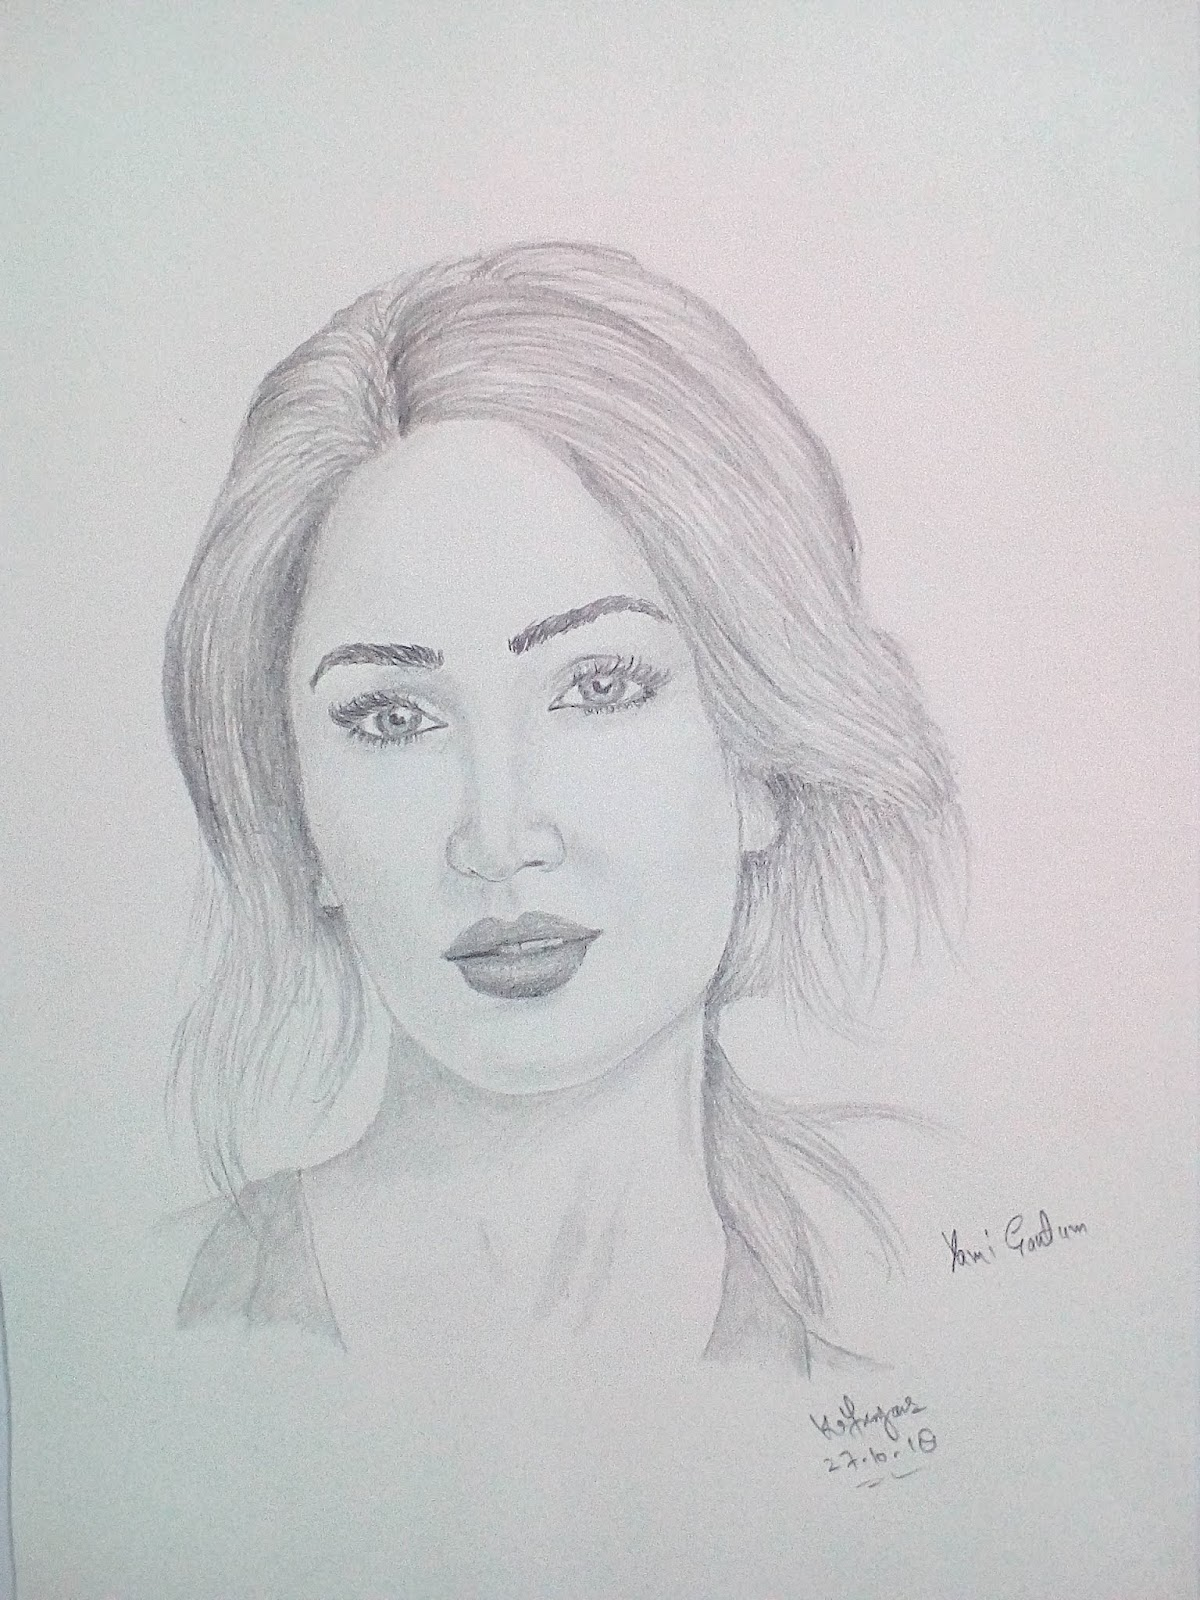 Yami gautum and emilia clarke pencil sketches by kafasyaar